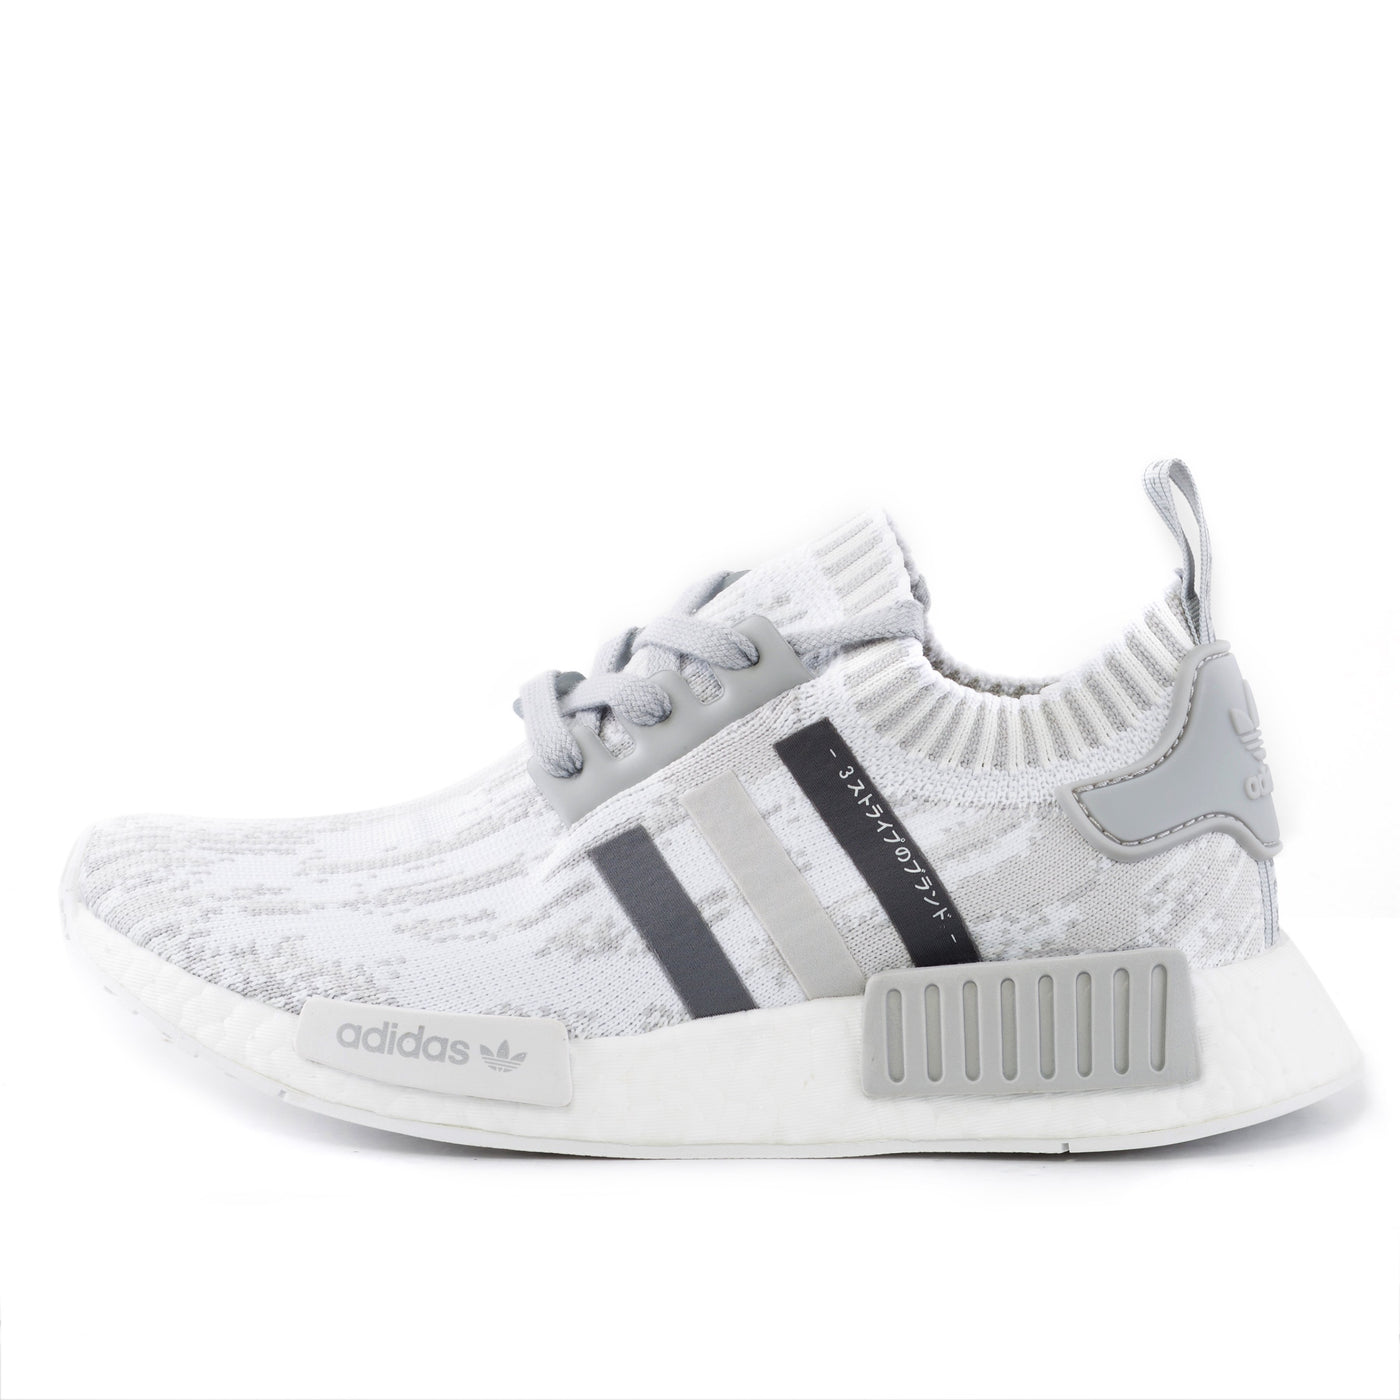 save off 56c95 9509b NMD_XR1 - The Good Life